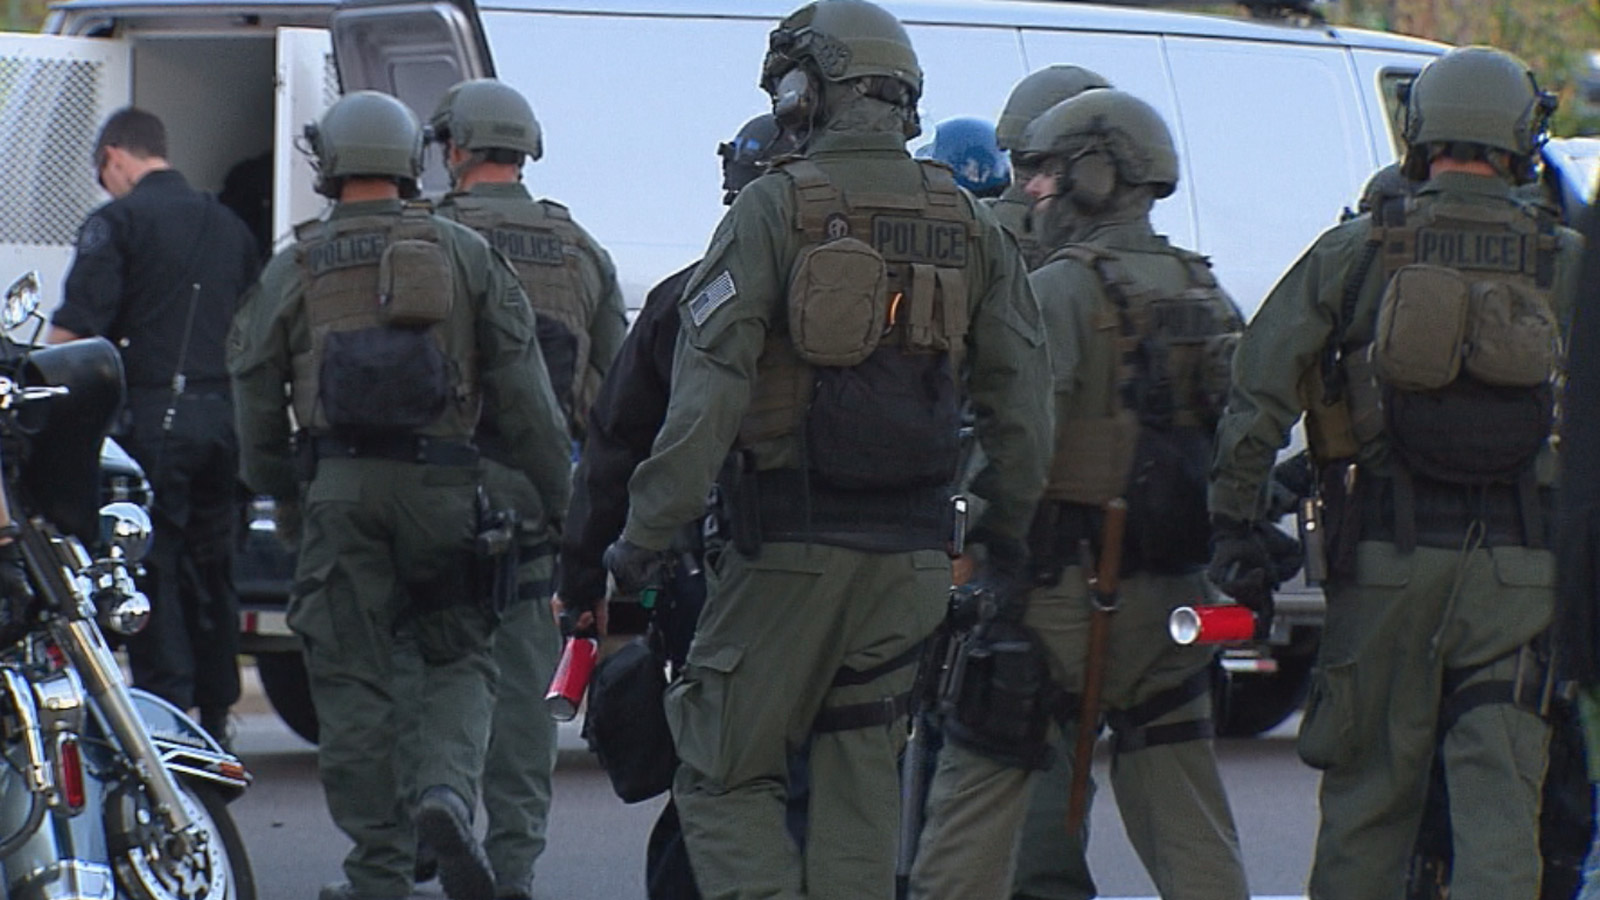 SWAT officers at a protest on Tuesday (credit: CBS)